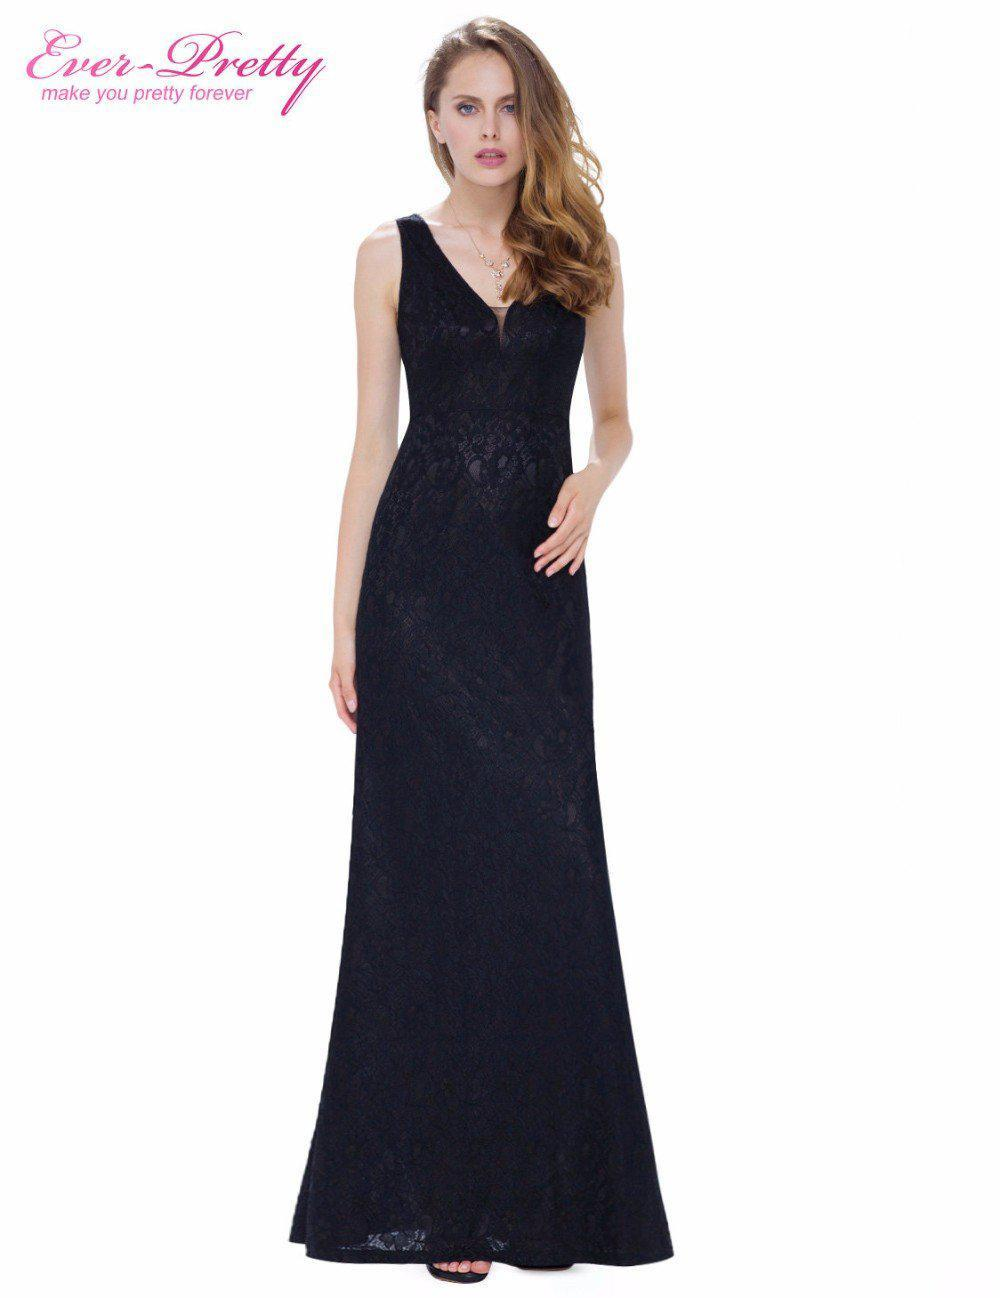 New Arrival Formal Evening Dresses Long EP08917 Ever Pretty Women Elegant Black Red V neck Sleeveless Evening Dresses-Dress-SheSimplyShops